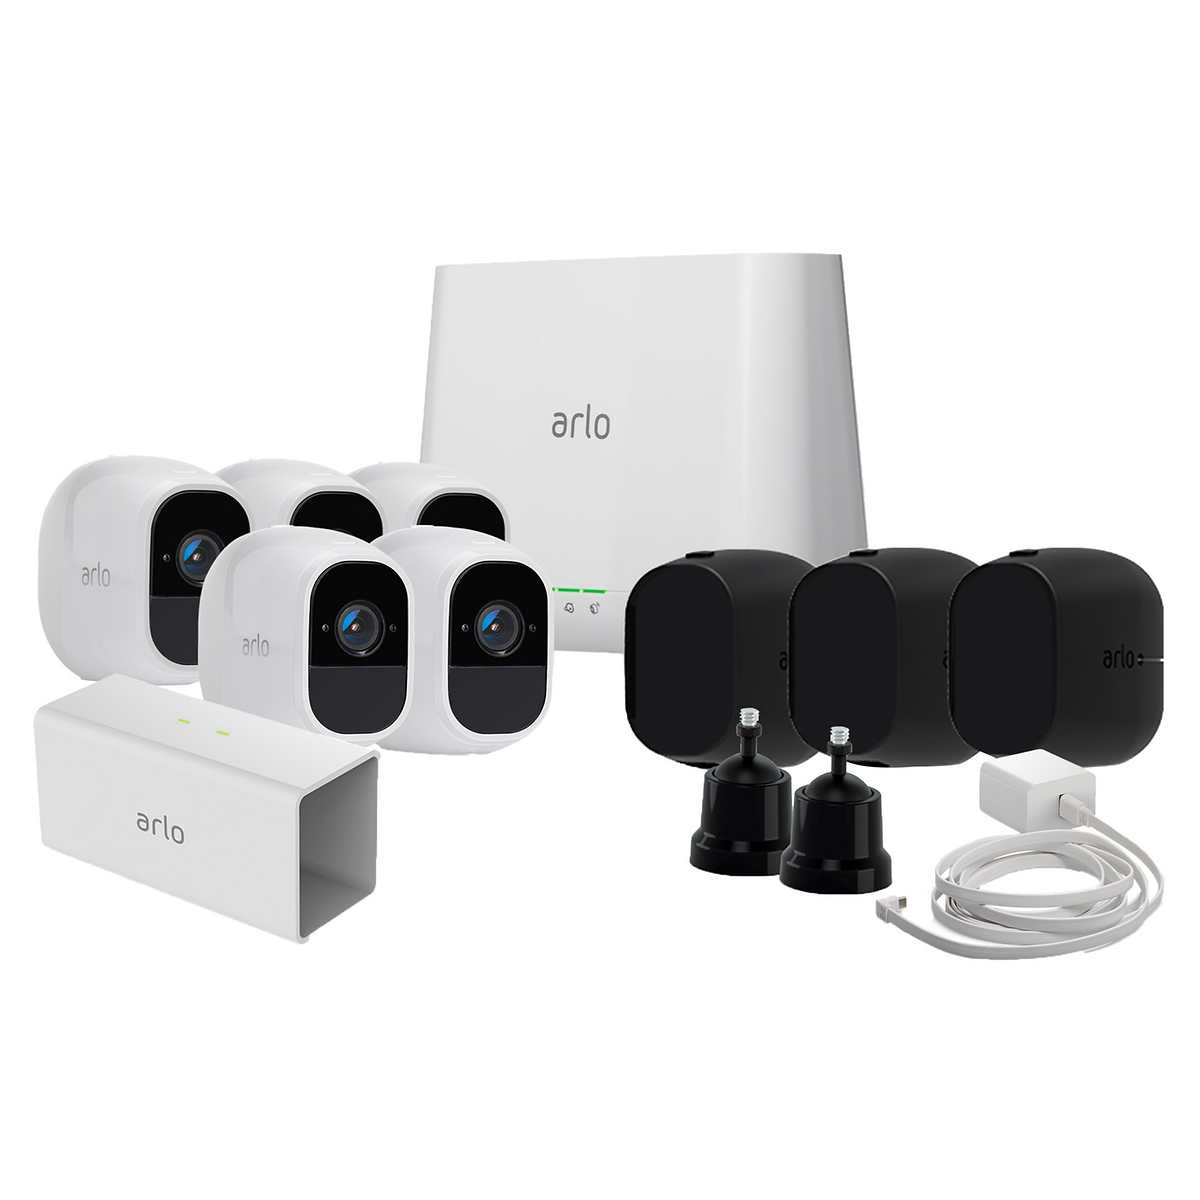 Arlo Pro 2 Wire-free Surveillance System Bundle with 5 HD Cameras